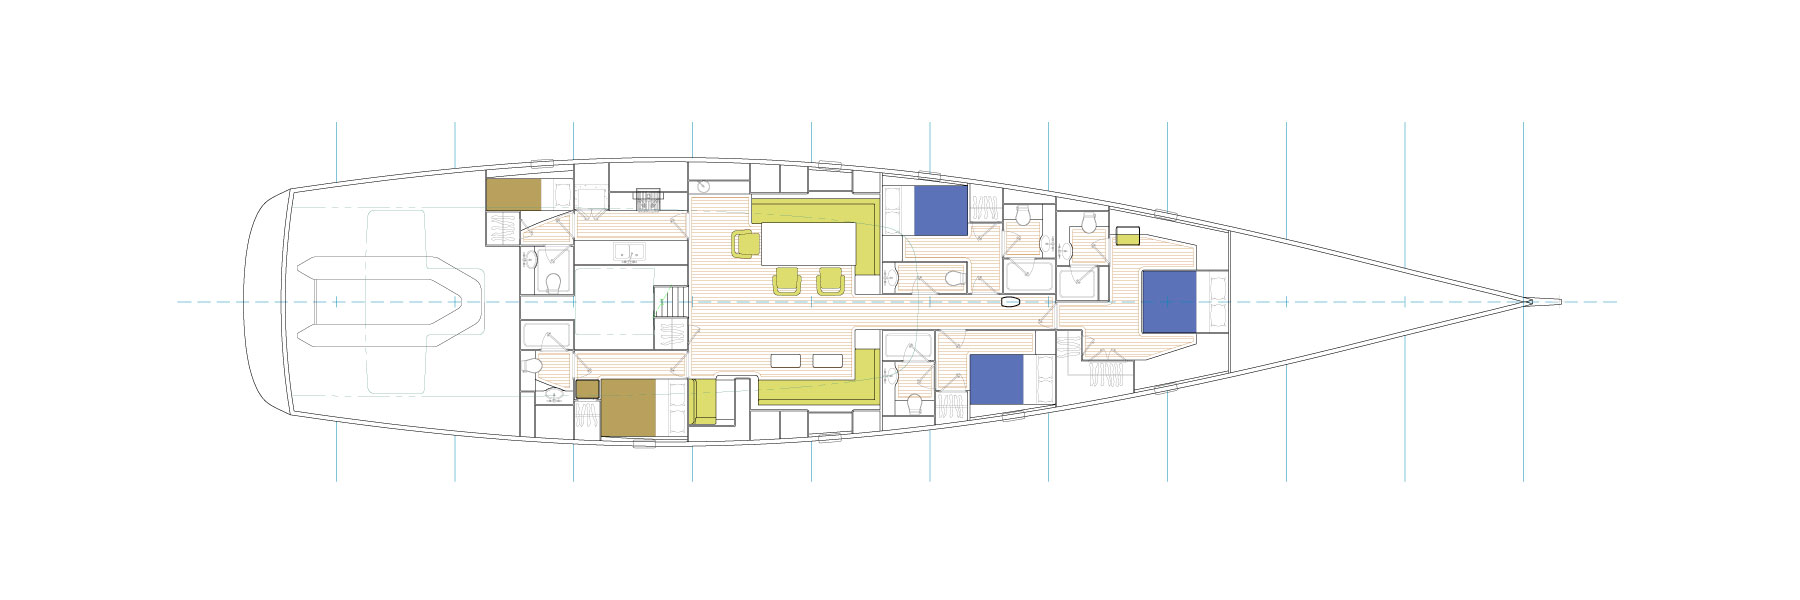 FSS102ft-plan